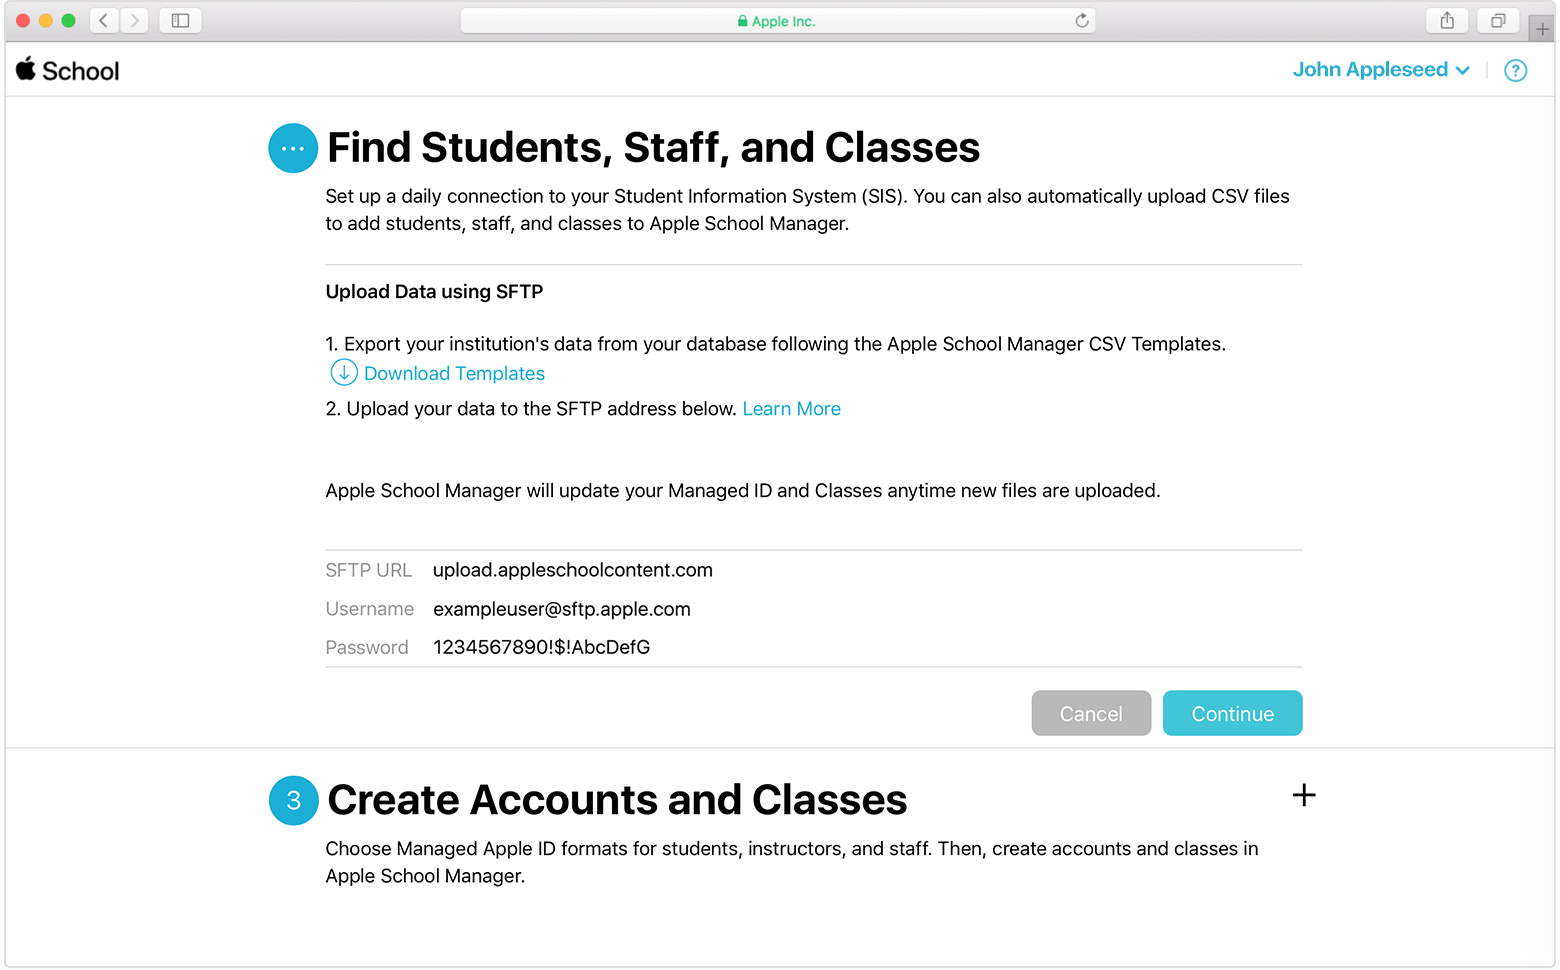 Use SFTP to upload student, staff, and class data to Apple School